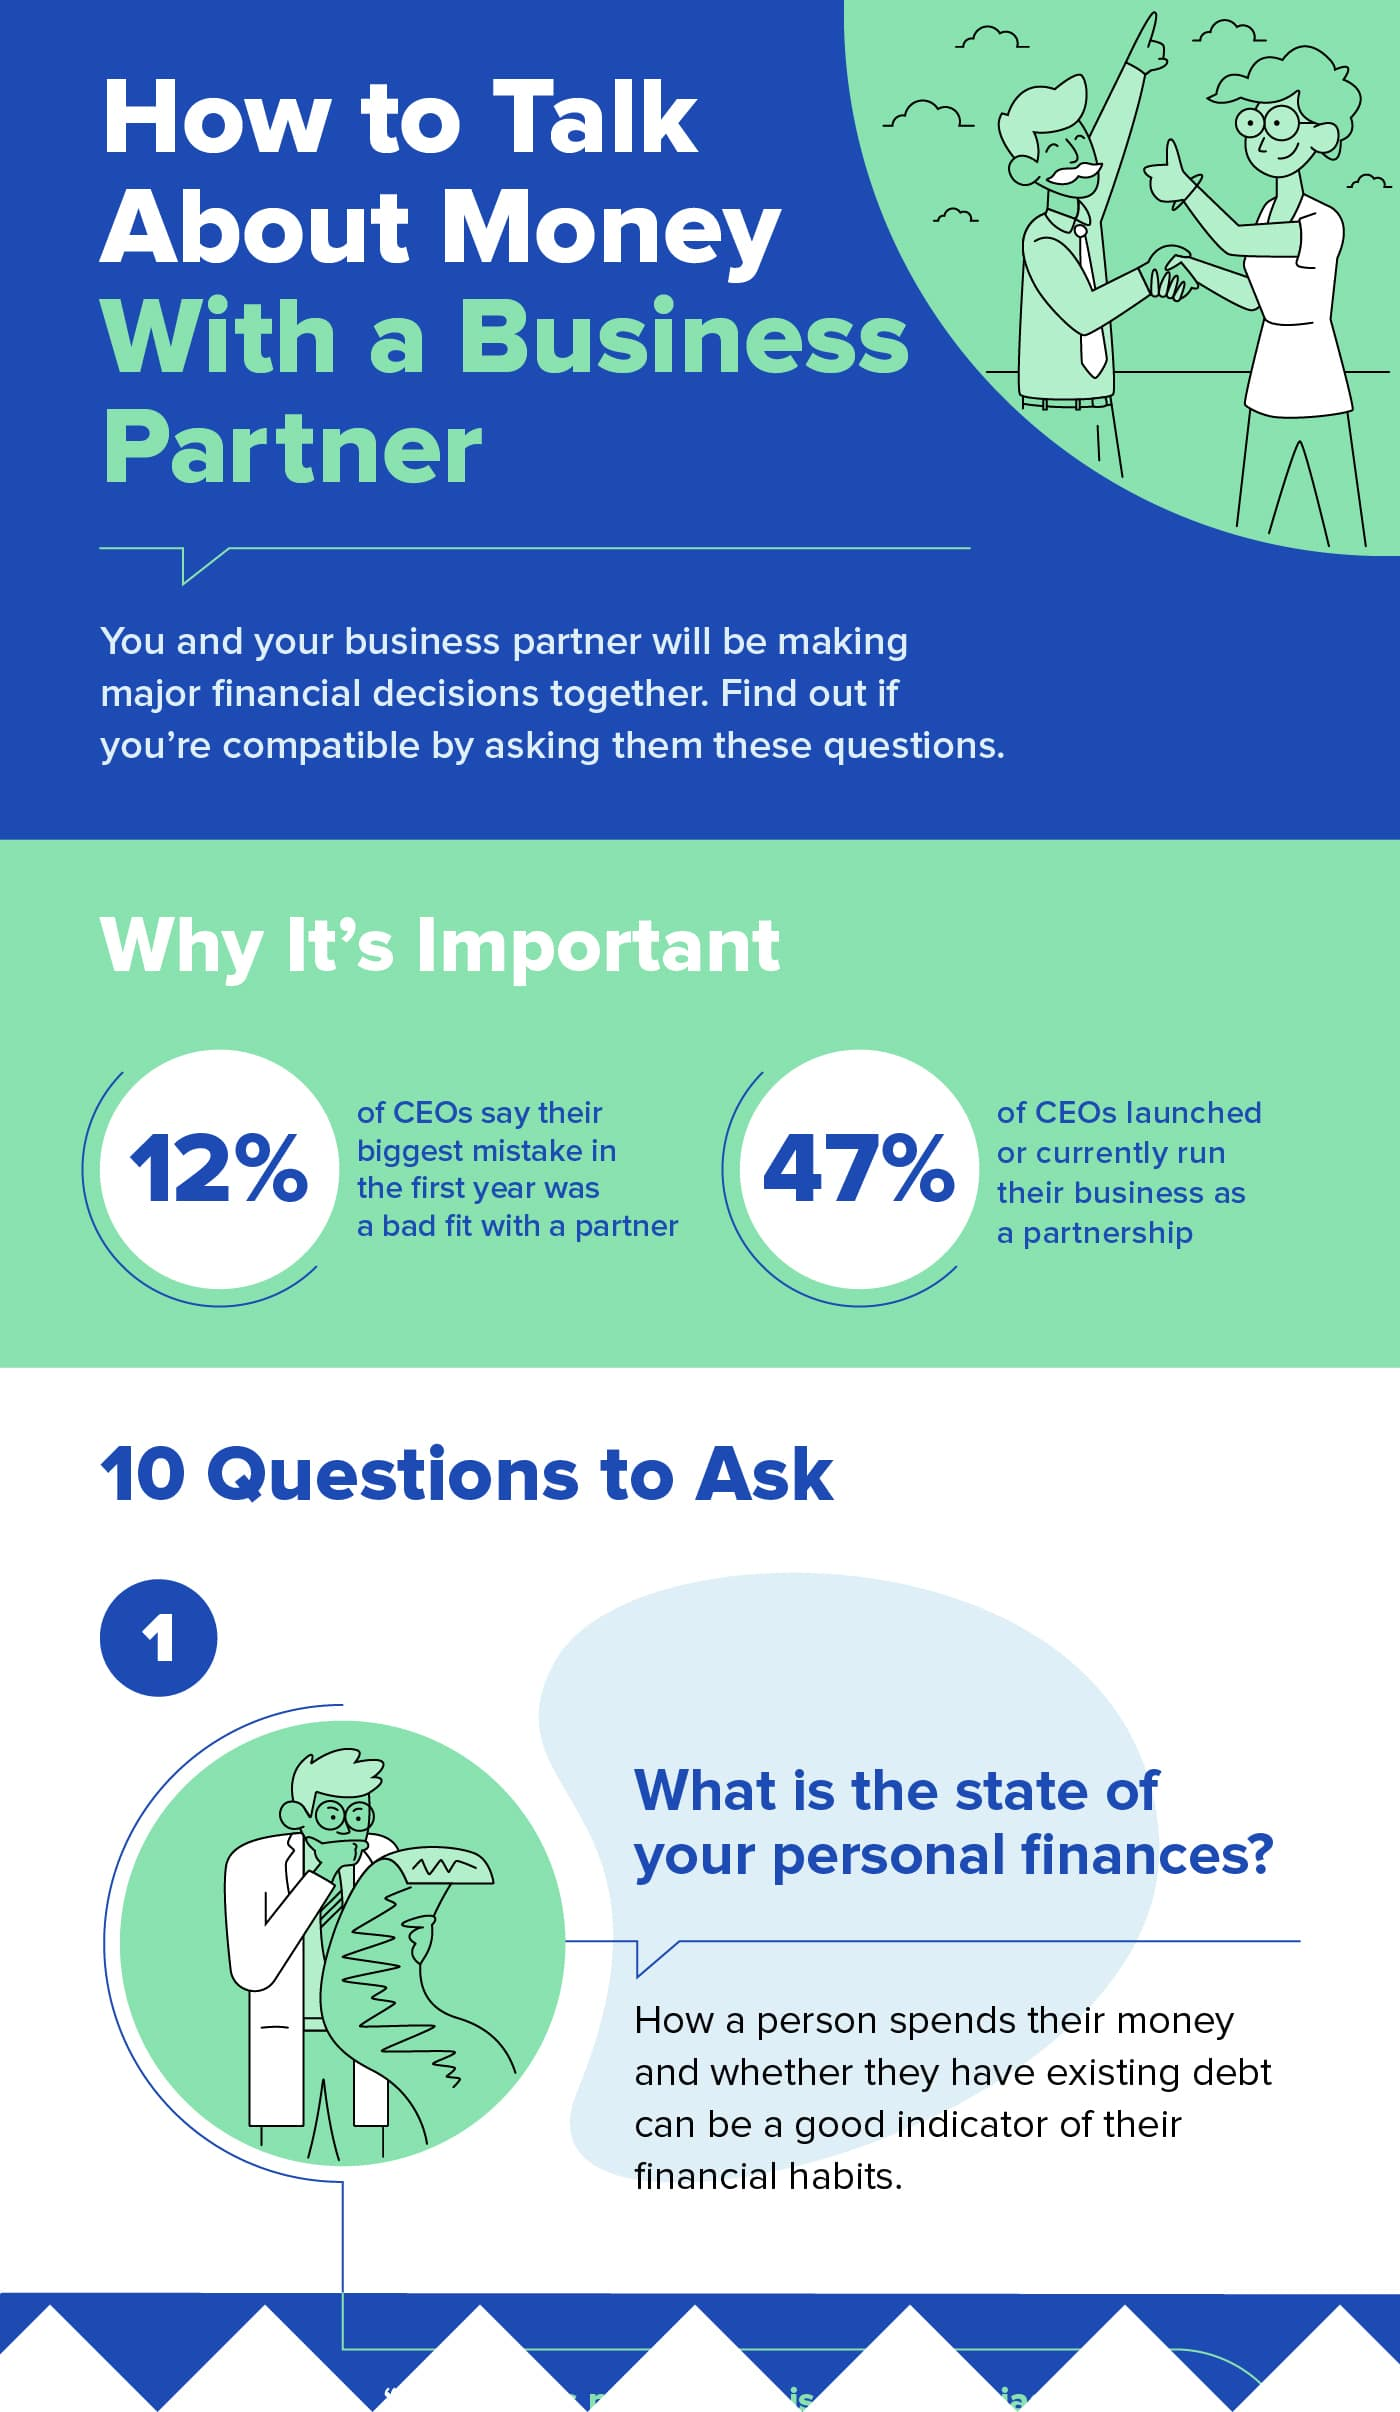 business partnership money discussion infographic